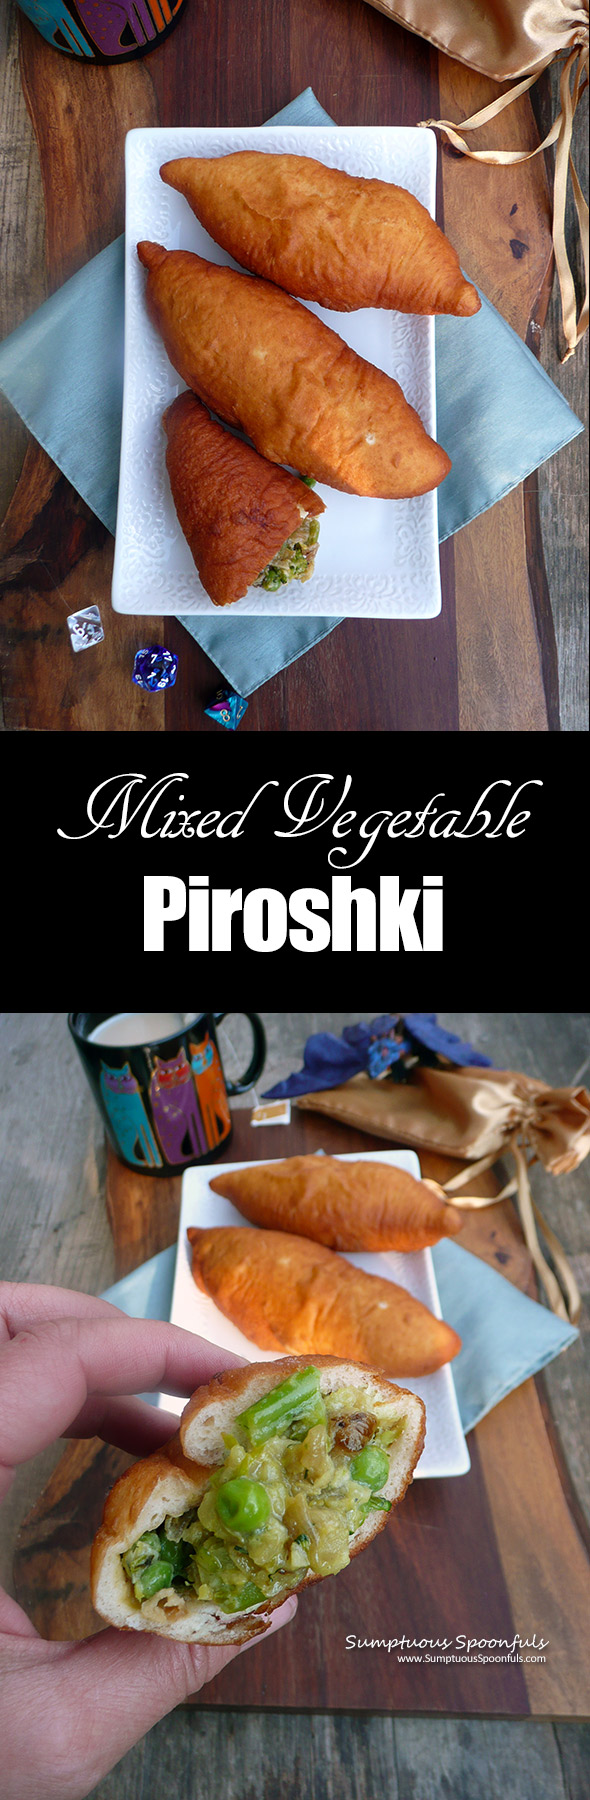 Mixed Vegetable Piroshki ~ Sumptuous Spoonfuls #Russian #vegetarian #pocketsandwich